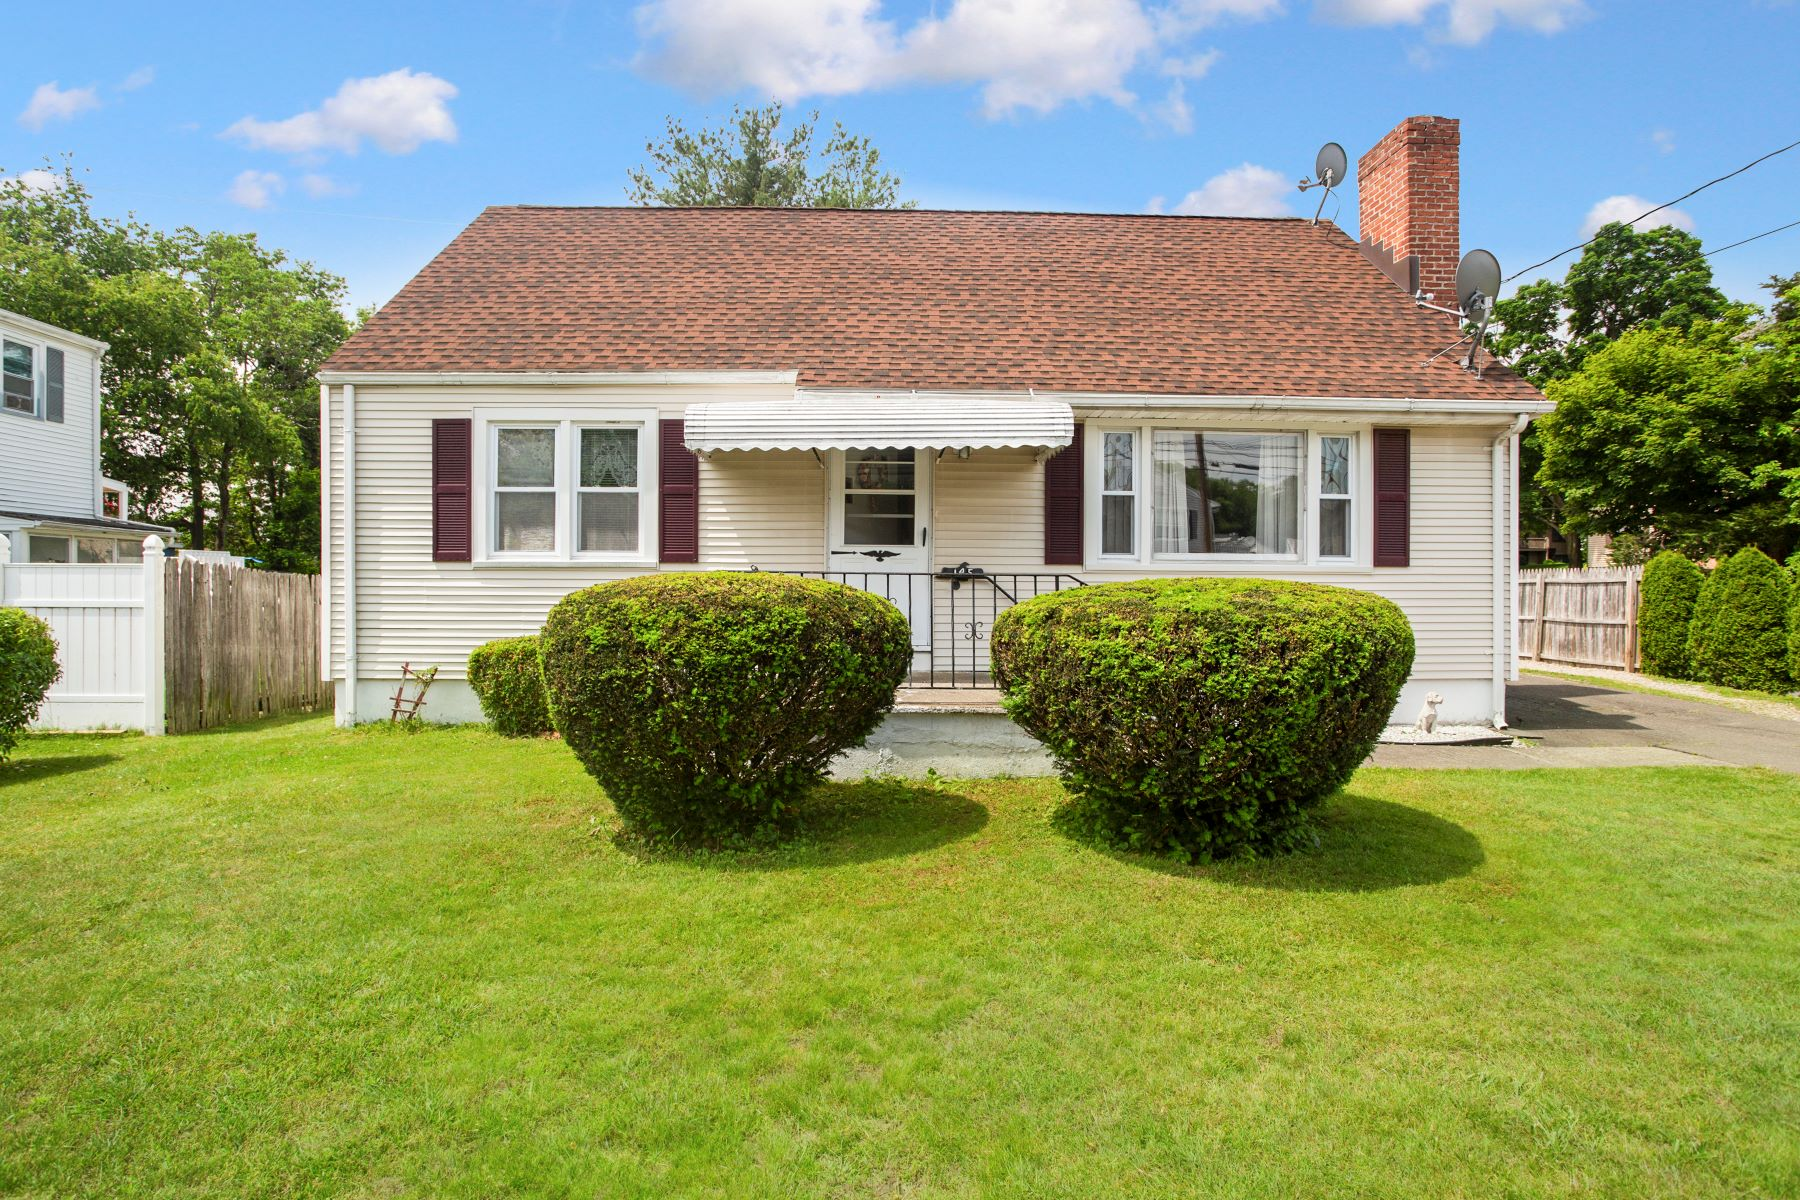 Single Family Homes for Sale at Well Built Cape Cod Home 145 Primrose Avenue Bridgeport, Connecticut 06606 United States